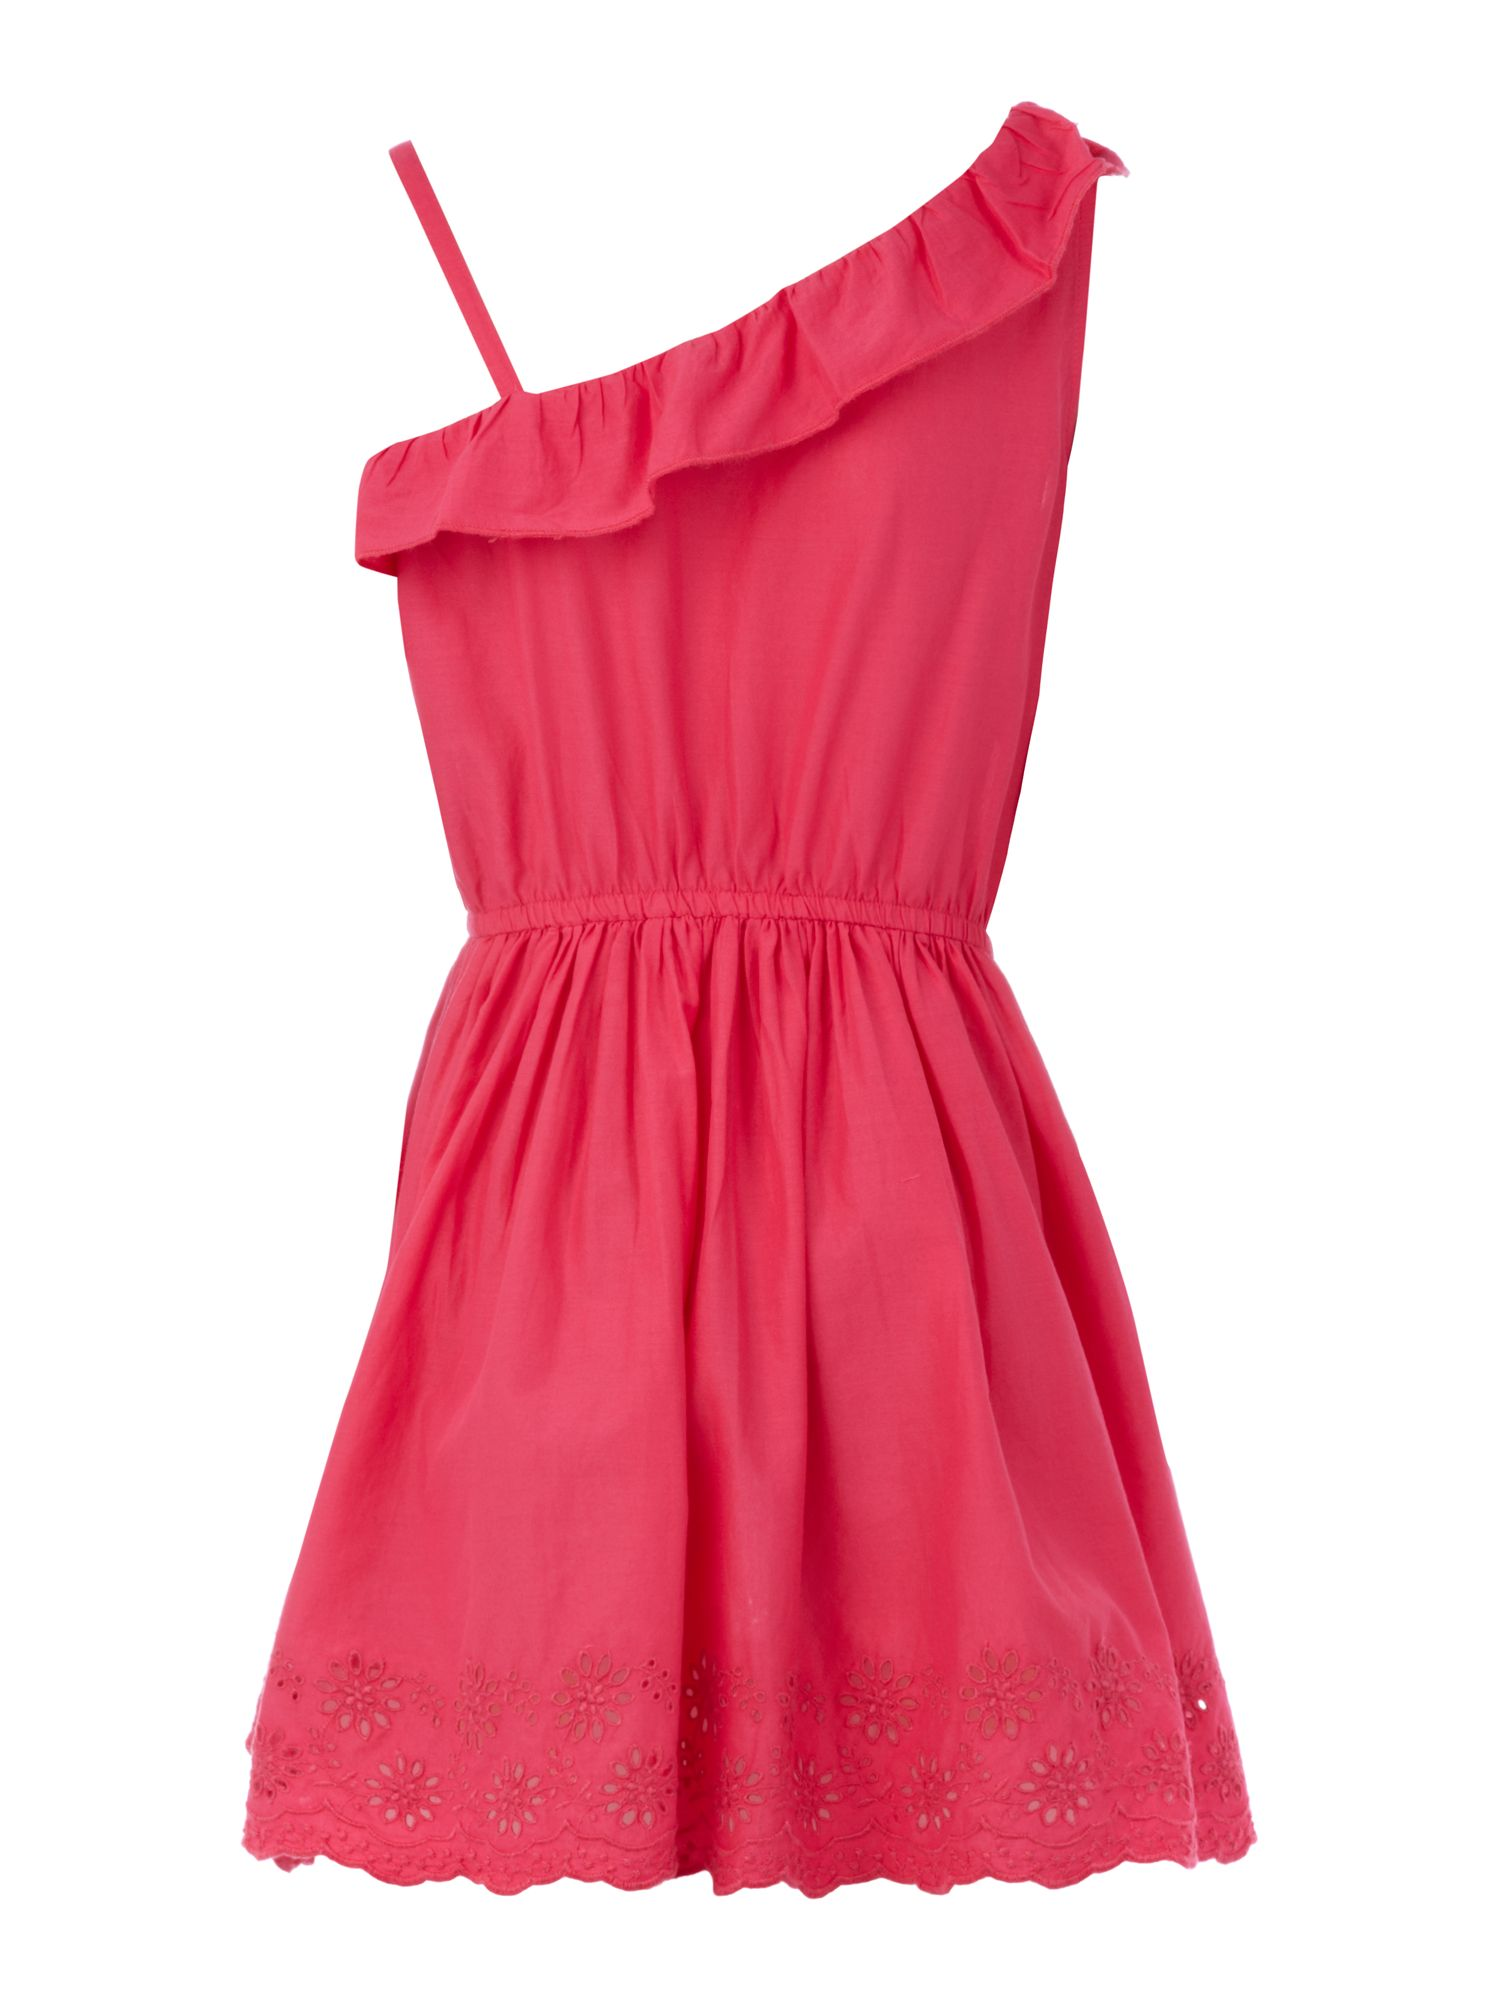 Girls asymetrical dress with frill